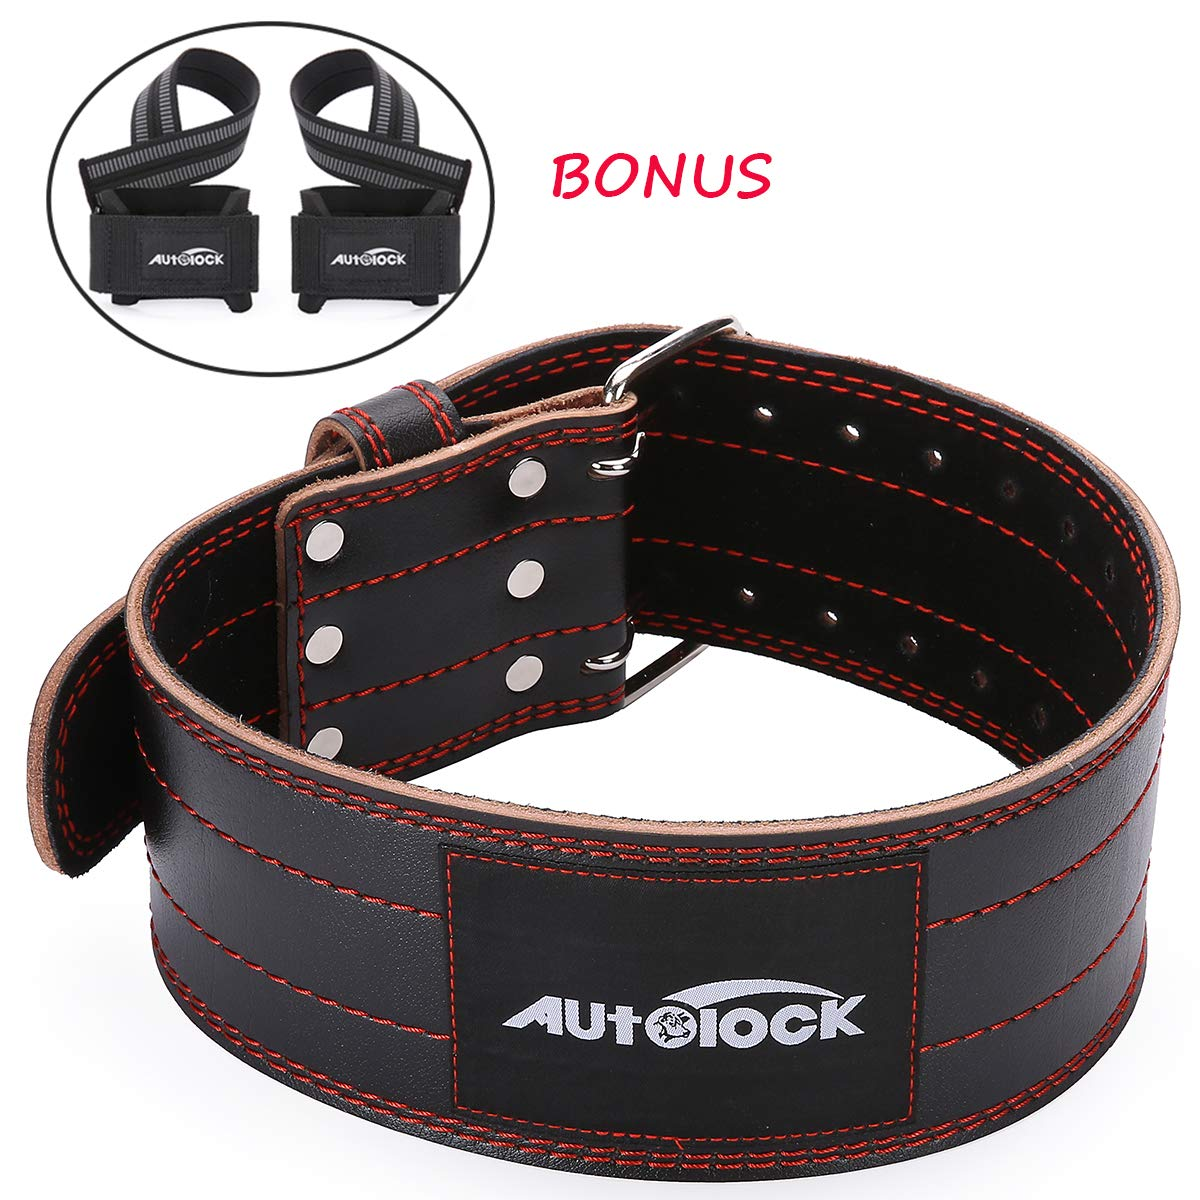 Autolock Weight Lifting Belt for Men and Women, Genuine Leather 4'' Wide Workout Belt with Double Prong Buckle, Stabilizing Lower Back Support for Weightlifting, Squats and Deadlifts